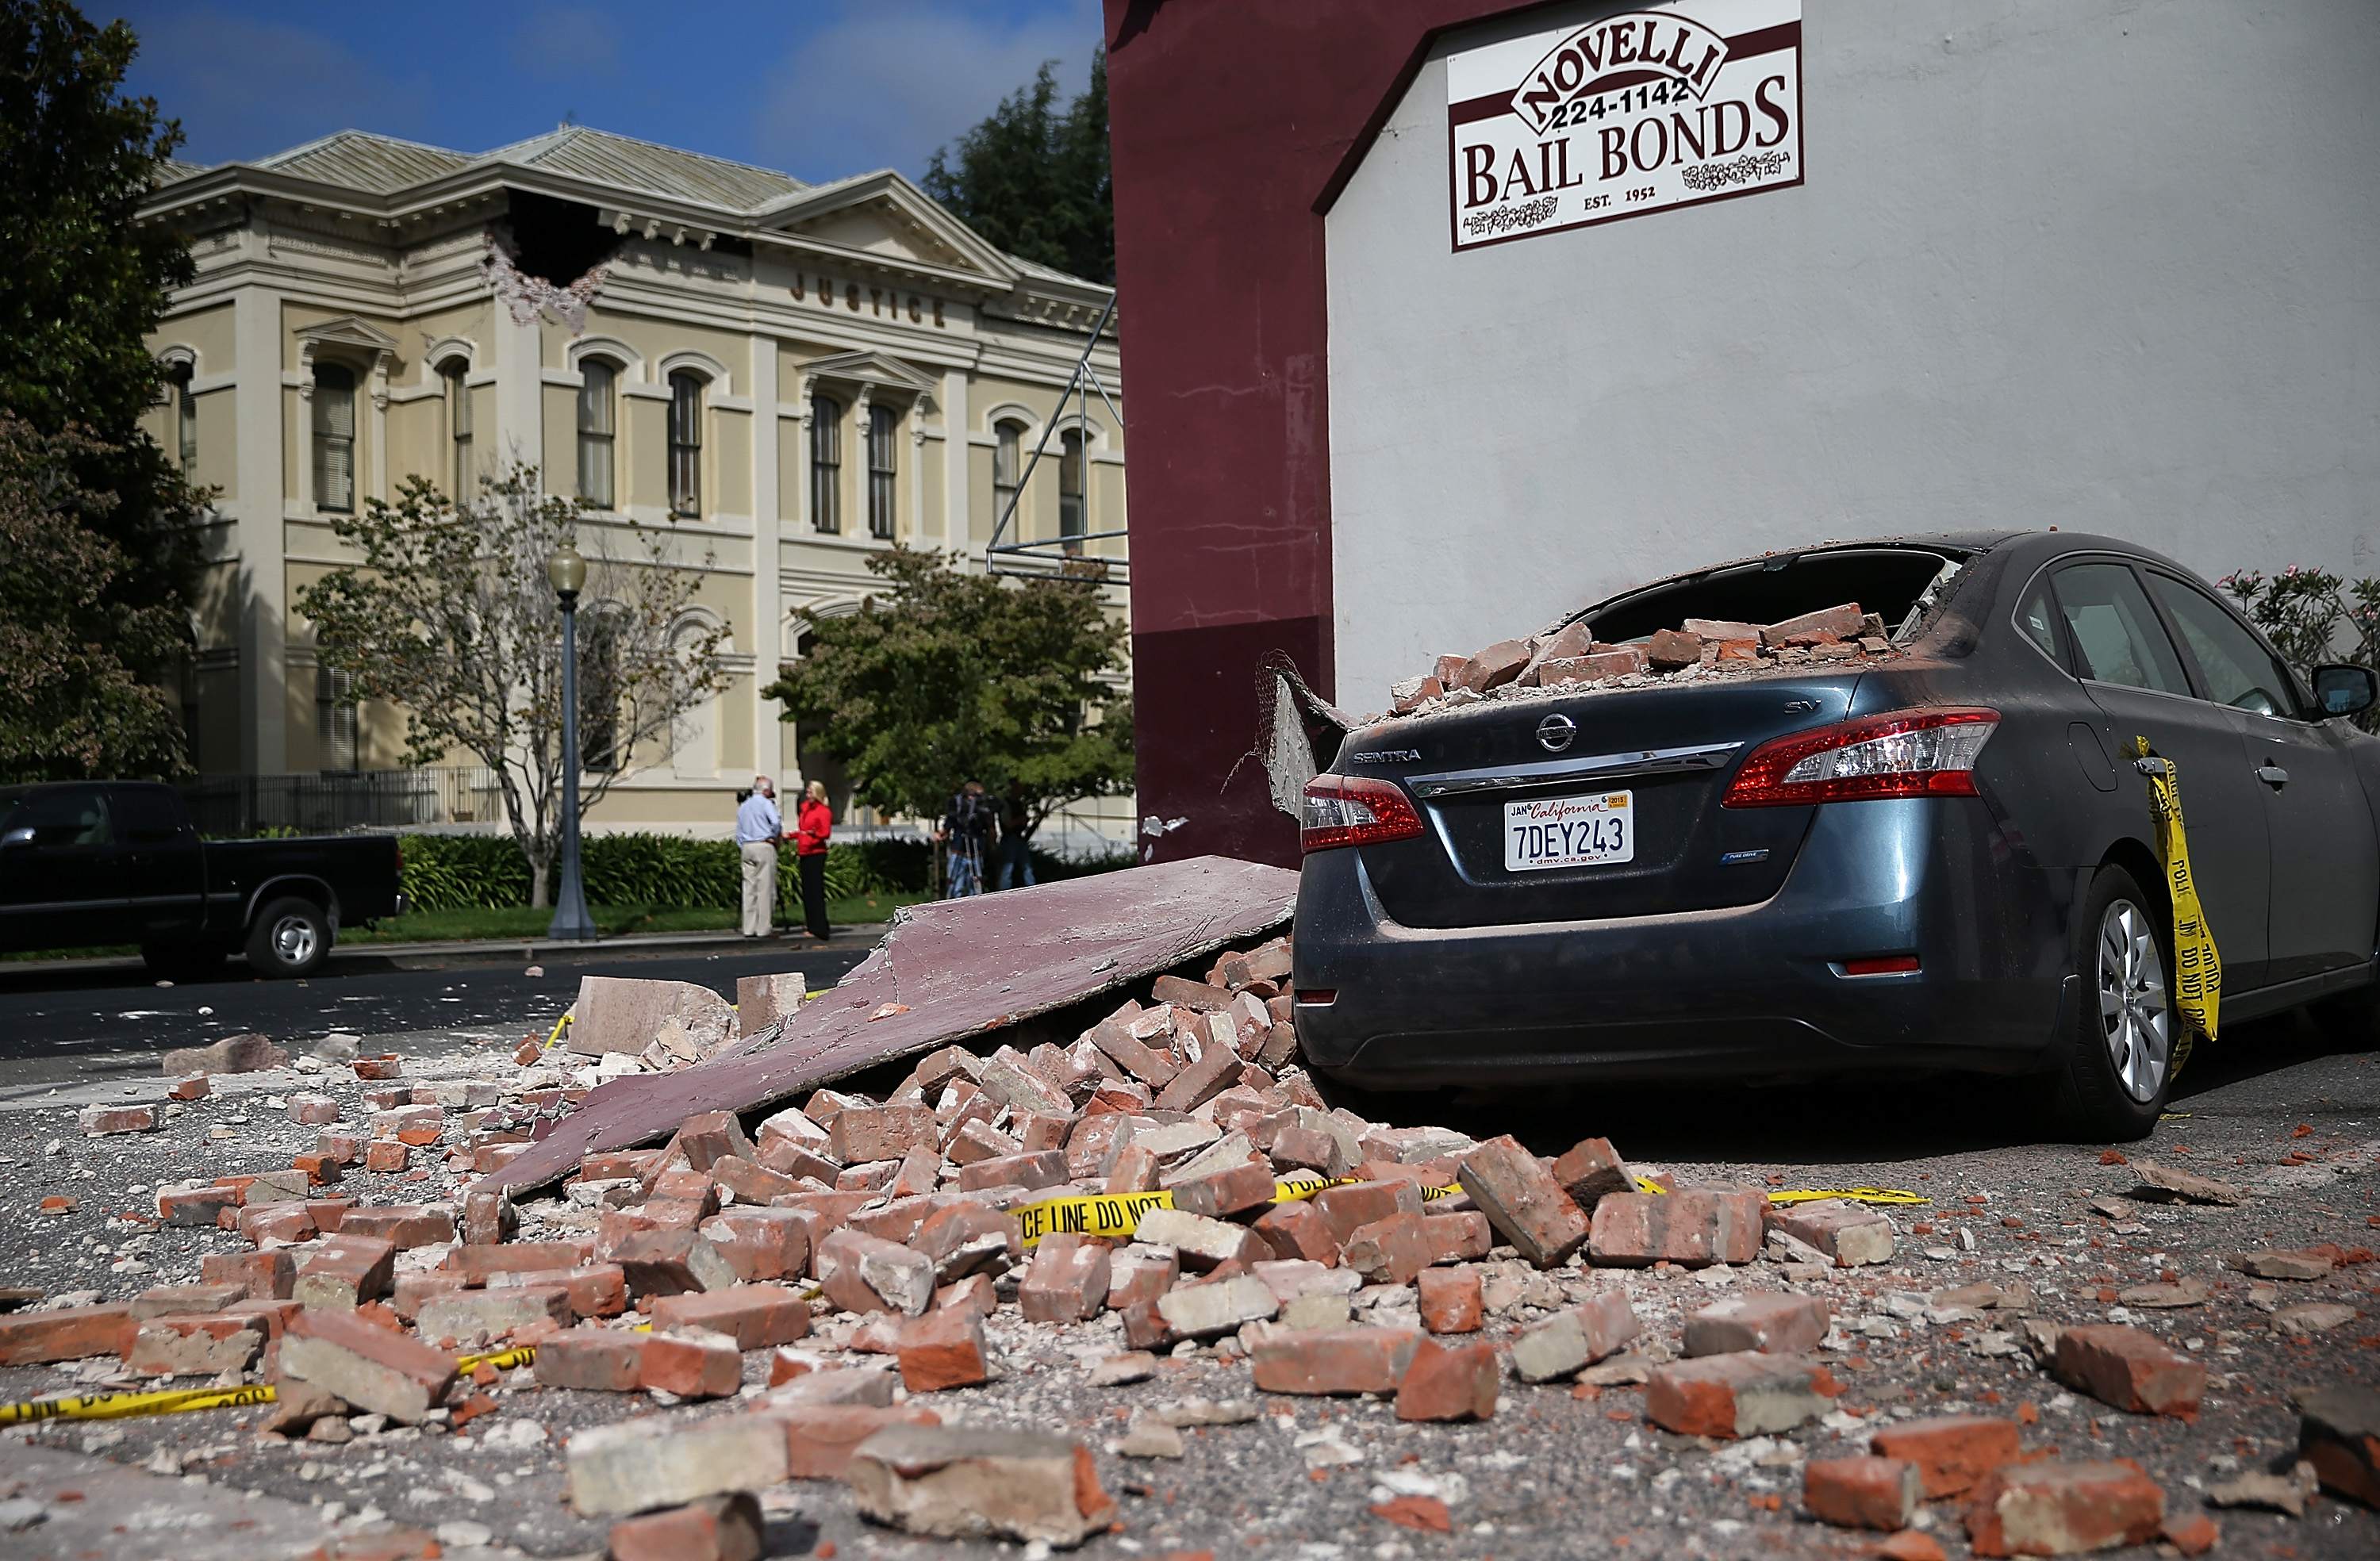 A car is seen covered in bricks following a reported 6.0 earthquake on August 24, 2014 in Napa, California. Justin Sullivan/Getty Images